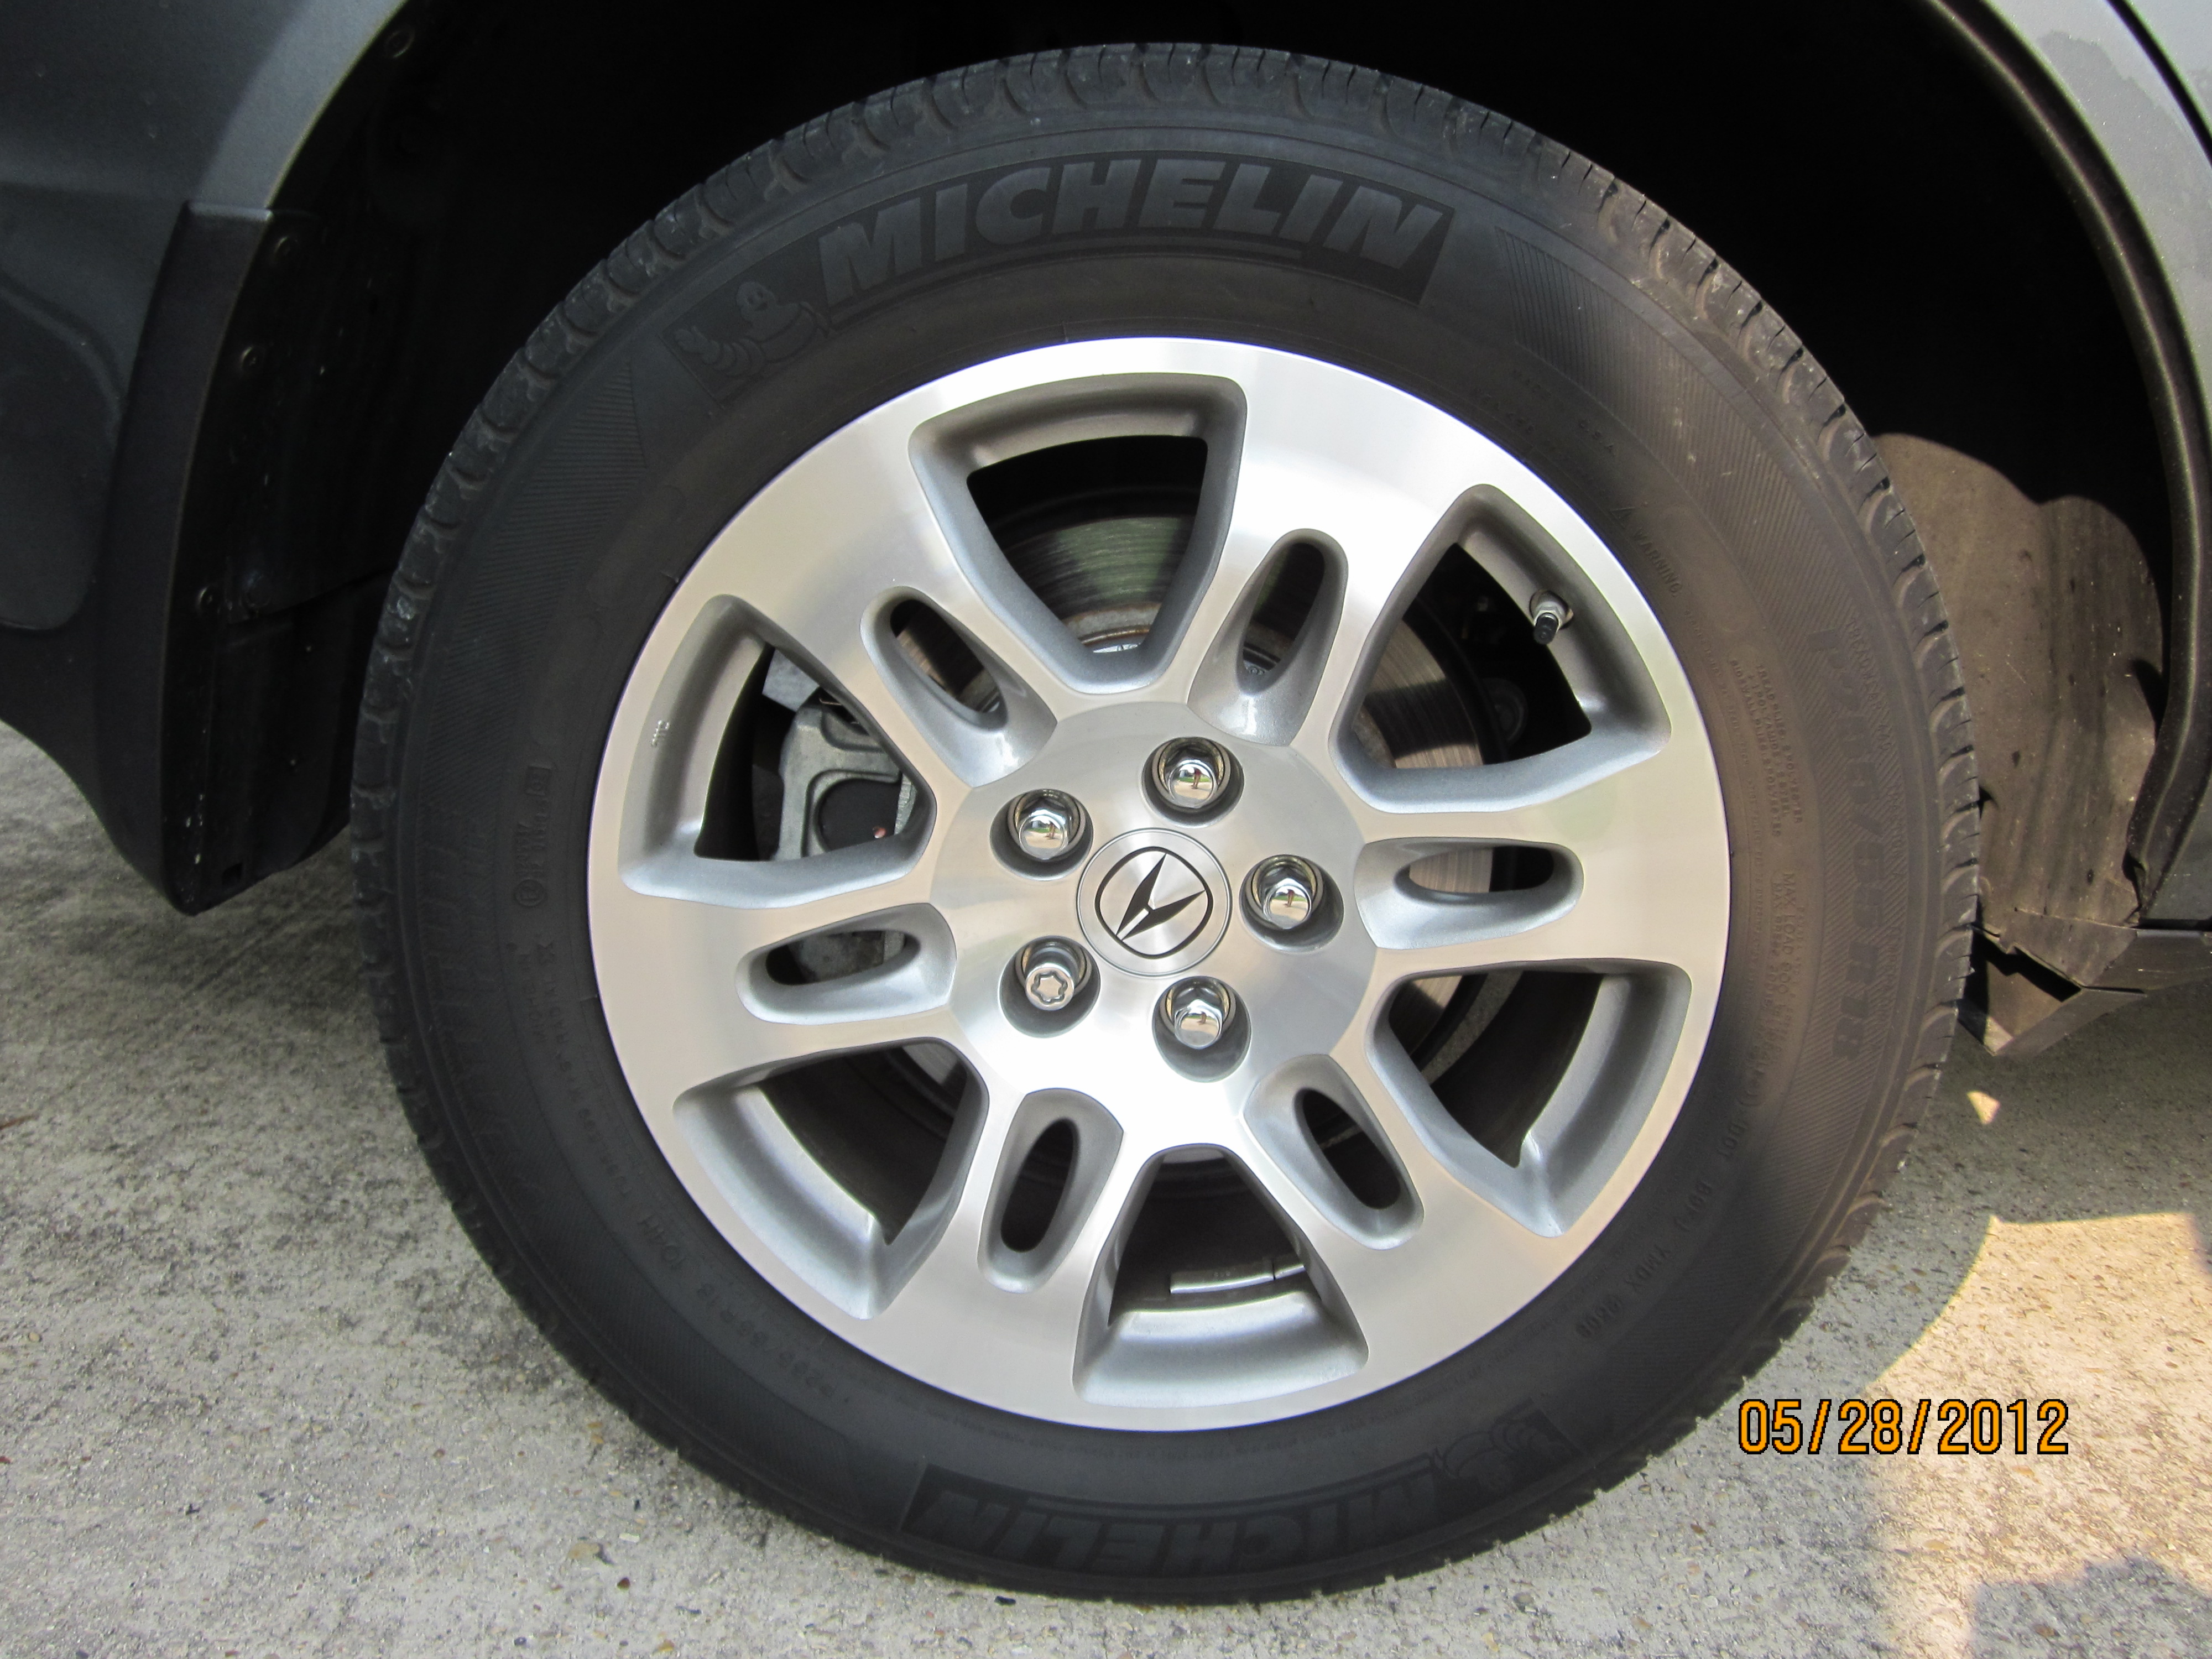 What Are My OEM Wheels Worth Flavor Acura MDX Forum Acura - Acura mdx oem wheels